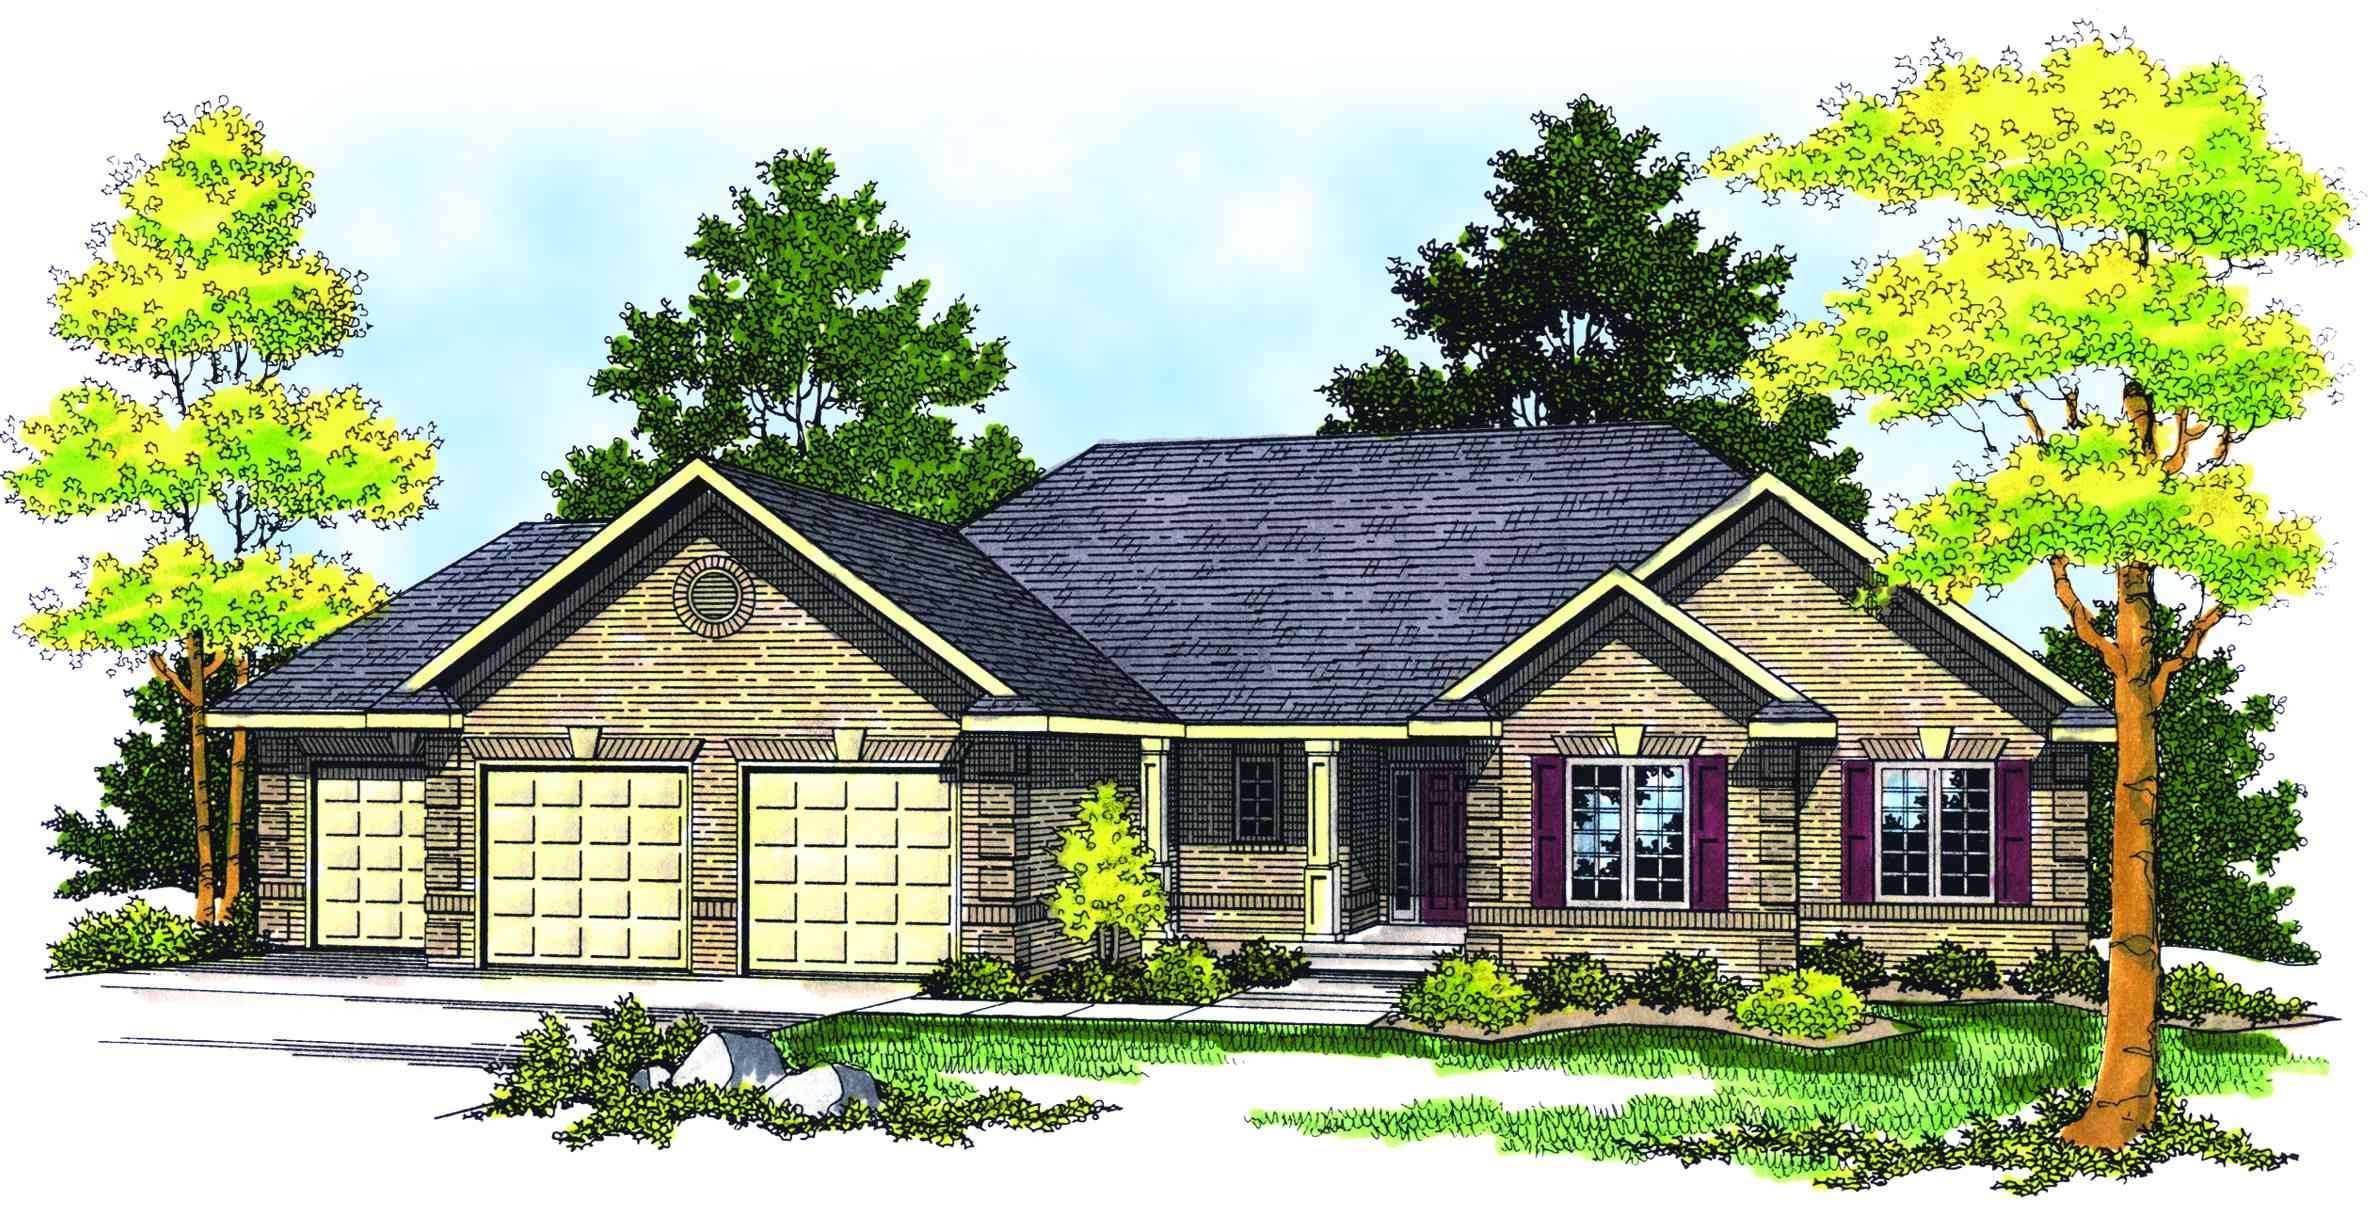 Traditional ranch style home plan 89130ah 1st floor for Traditional ranch home plans